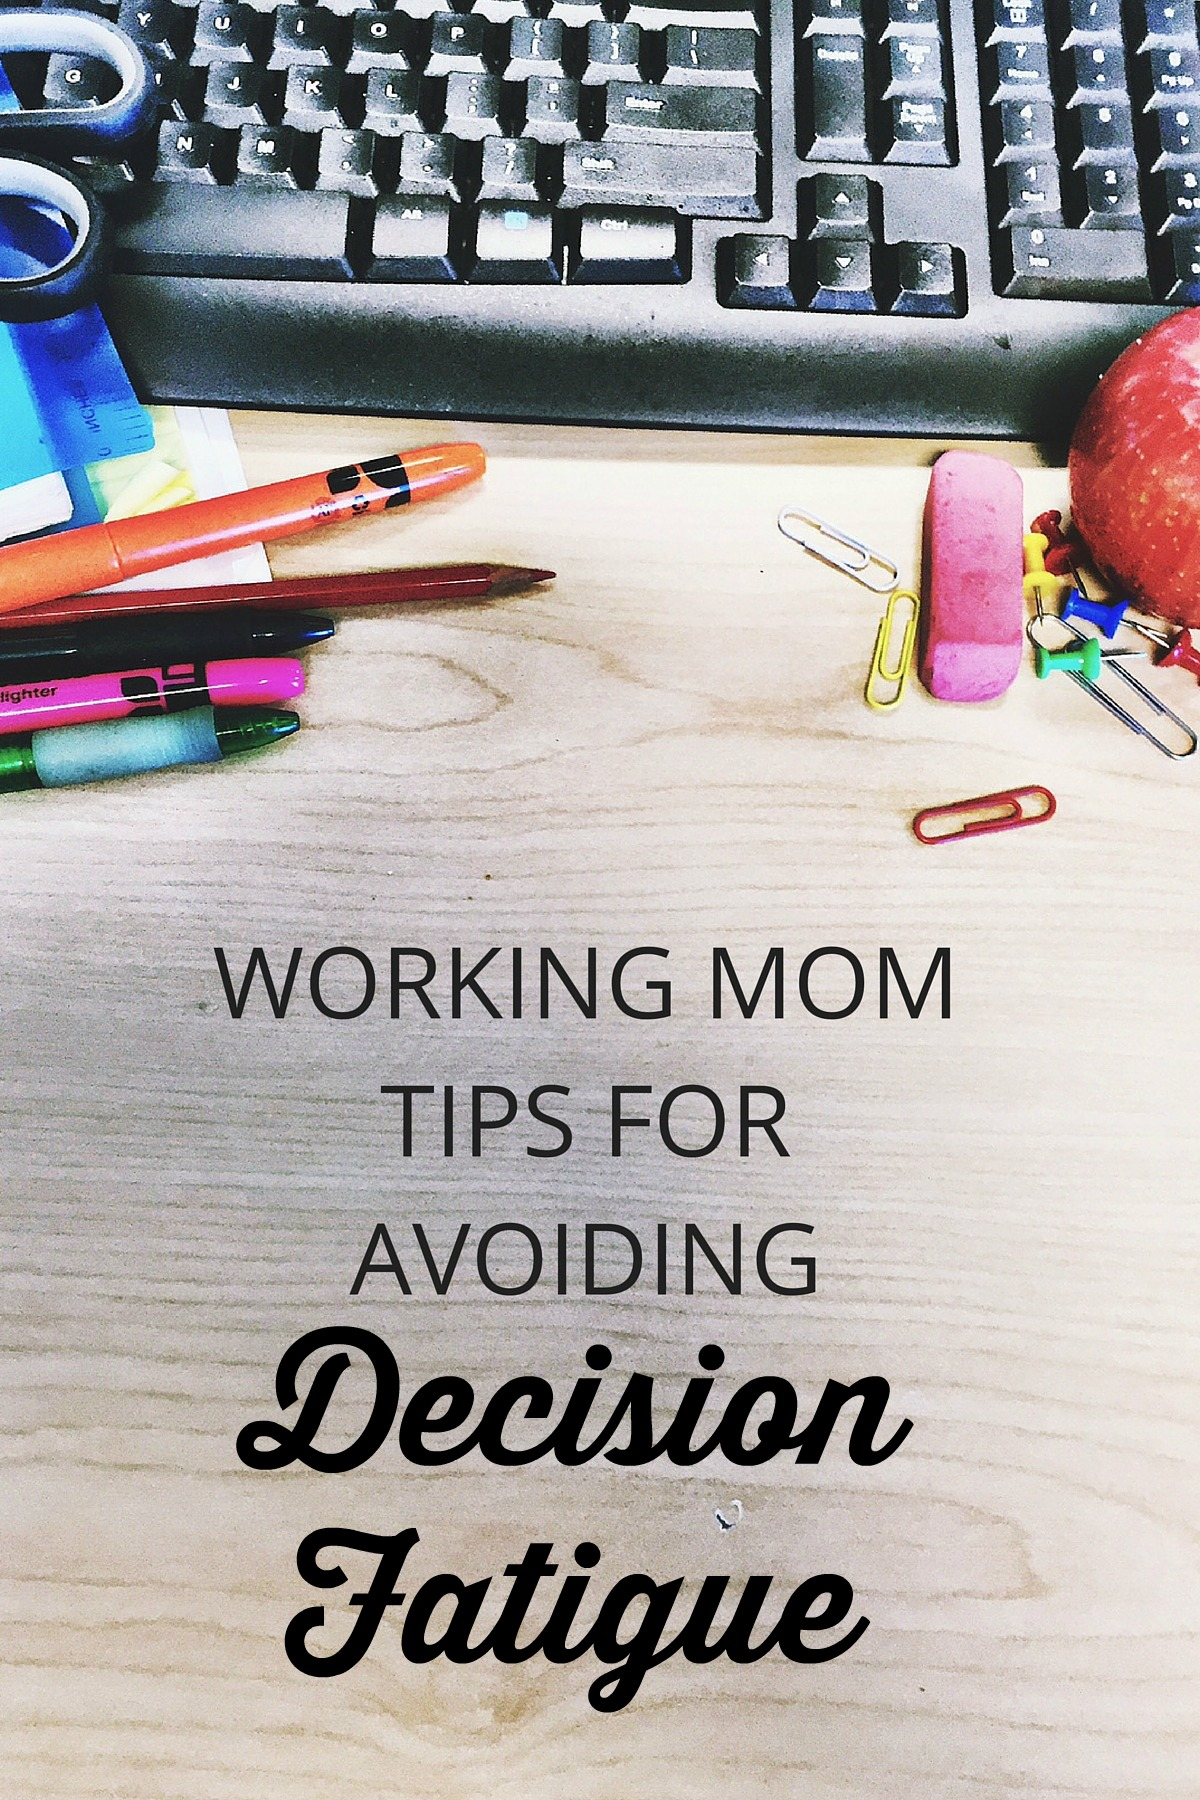 Making too many decisions can diminish your ability to make the best choices for yourself, your job, or your family. Learn more about decision fatigue—and how to fight it.